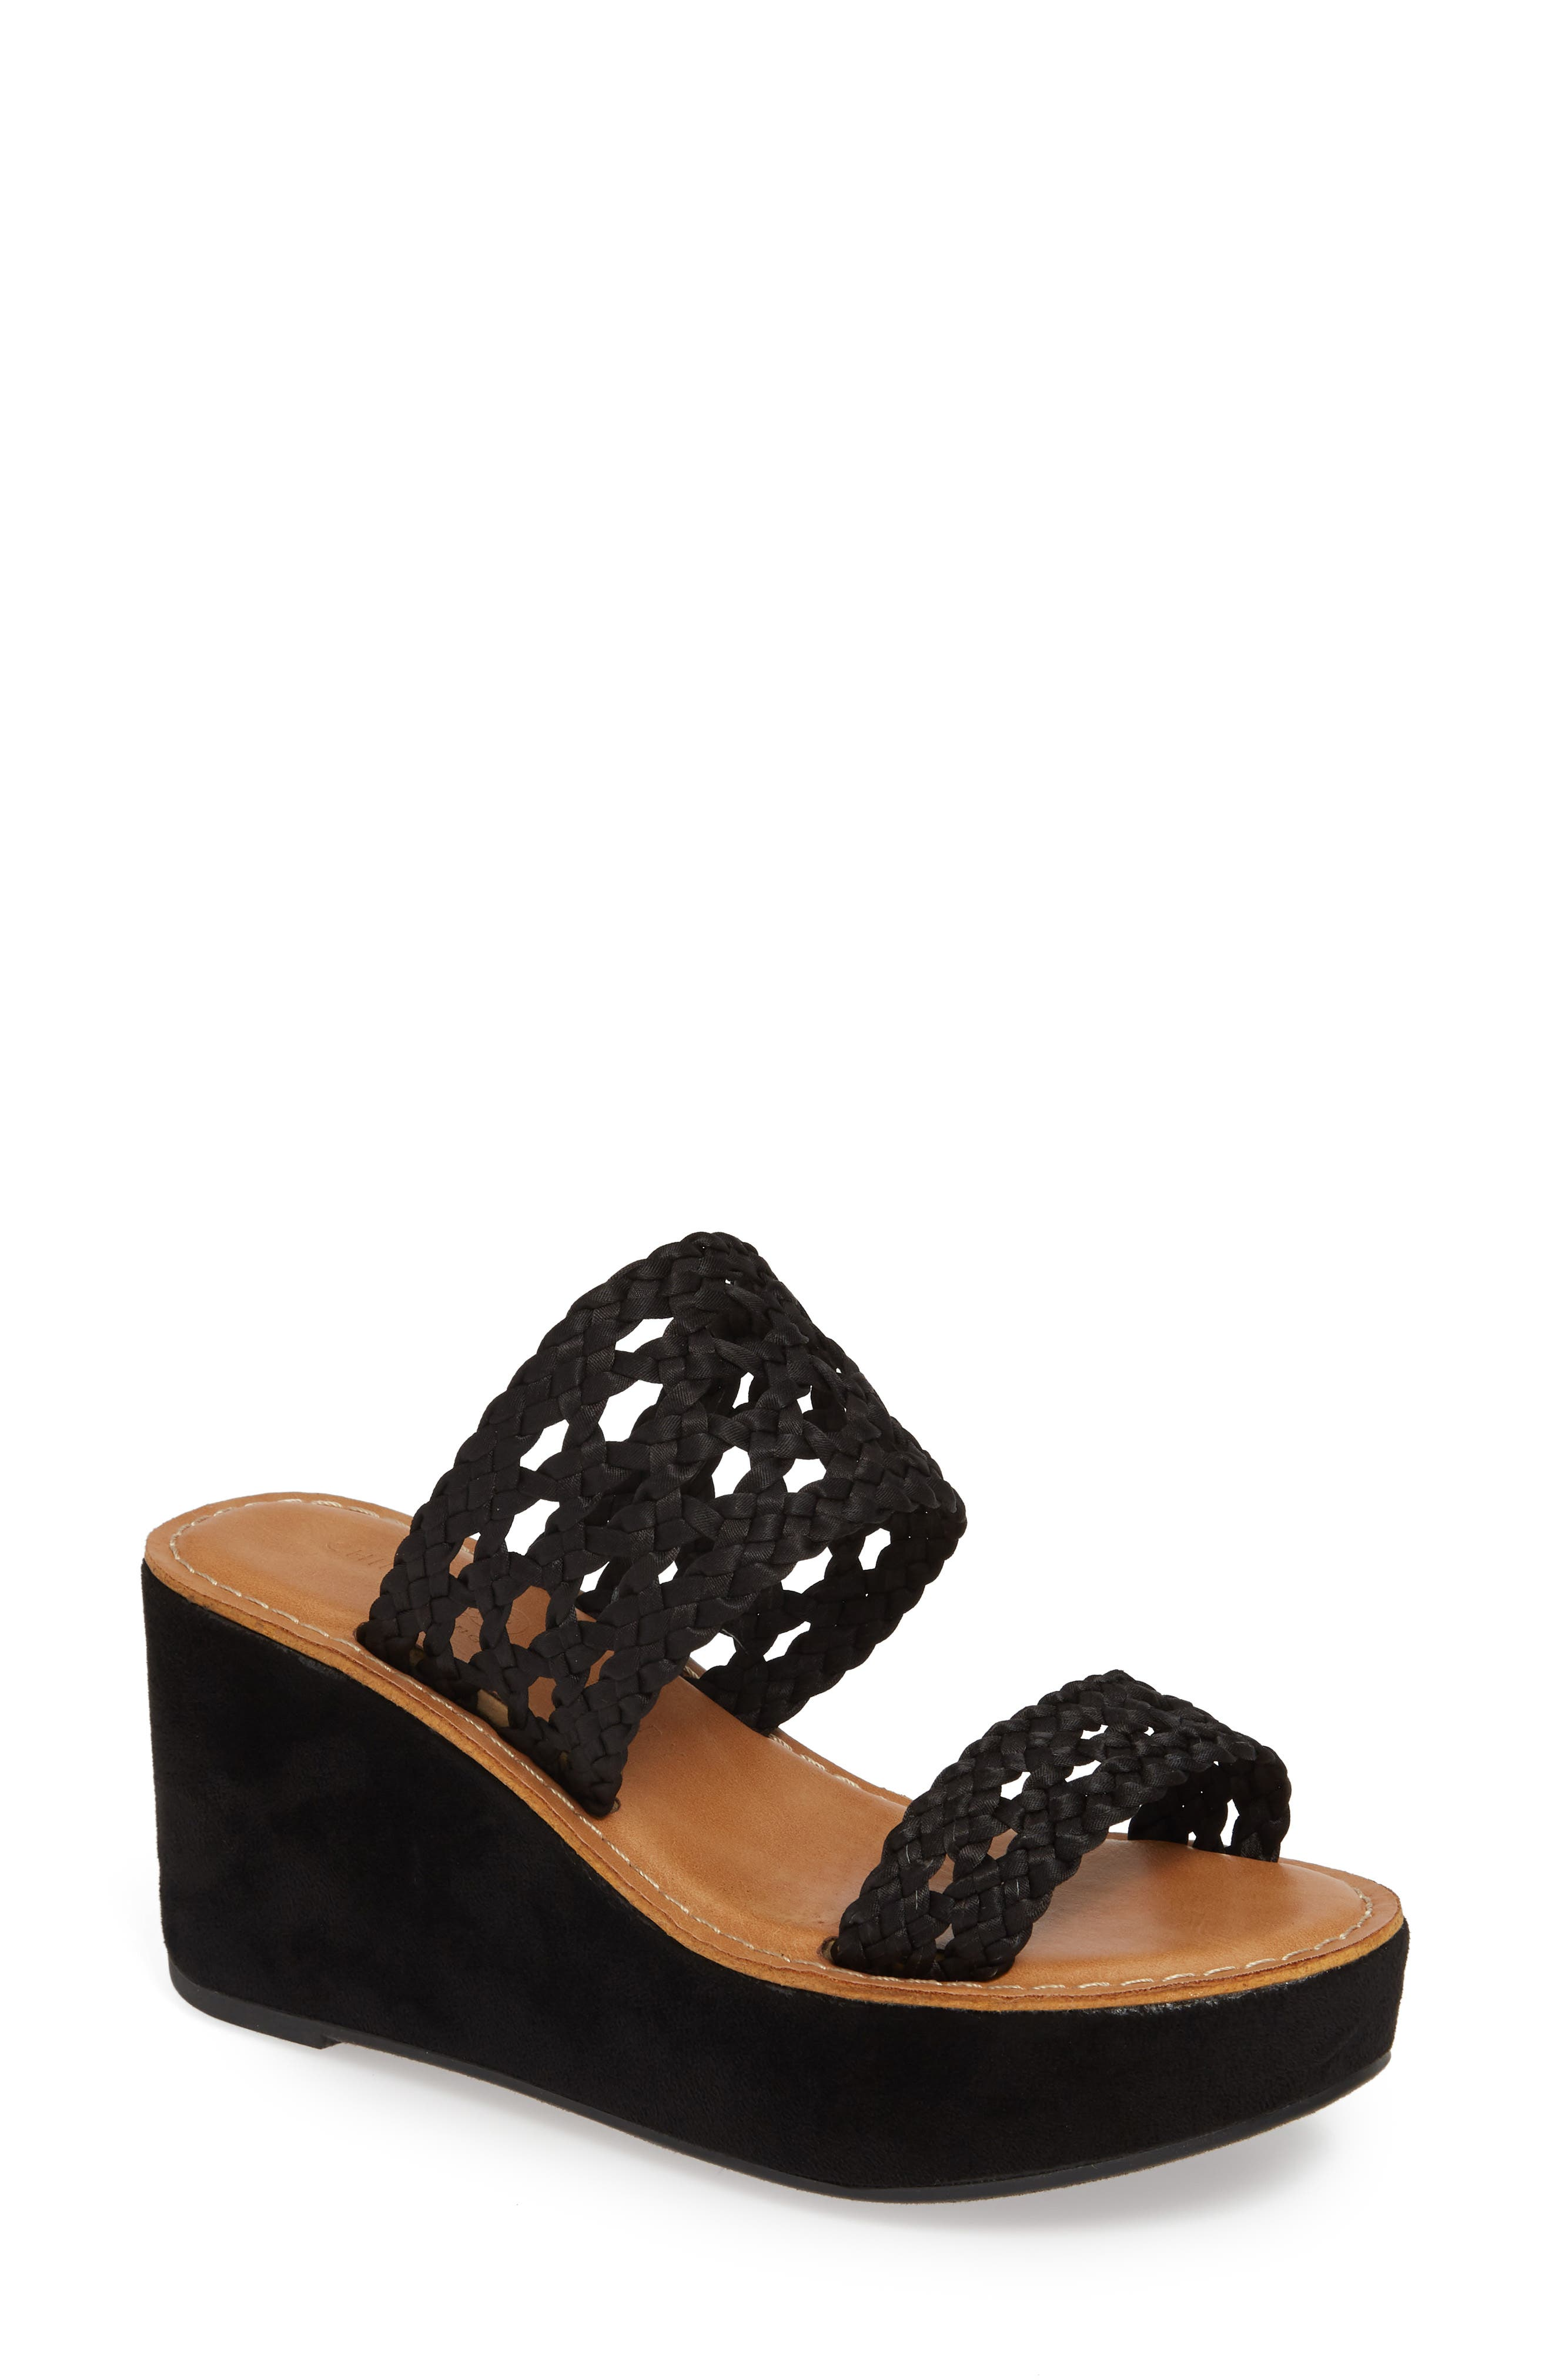 Chinese Laundry Orie Wedge Mule- Black